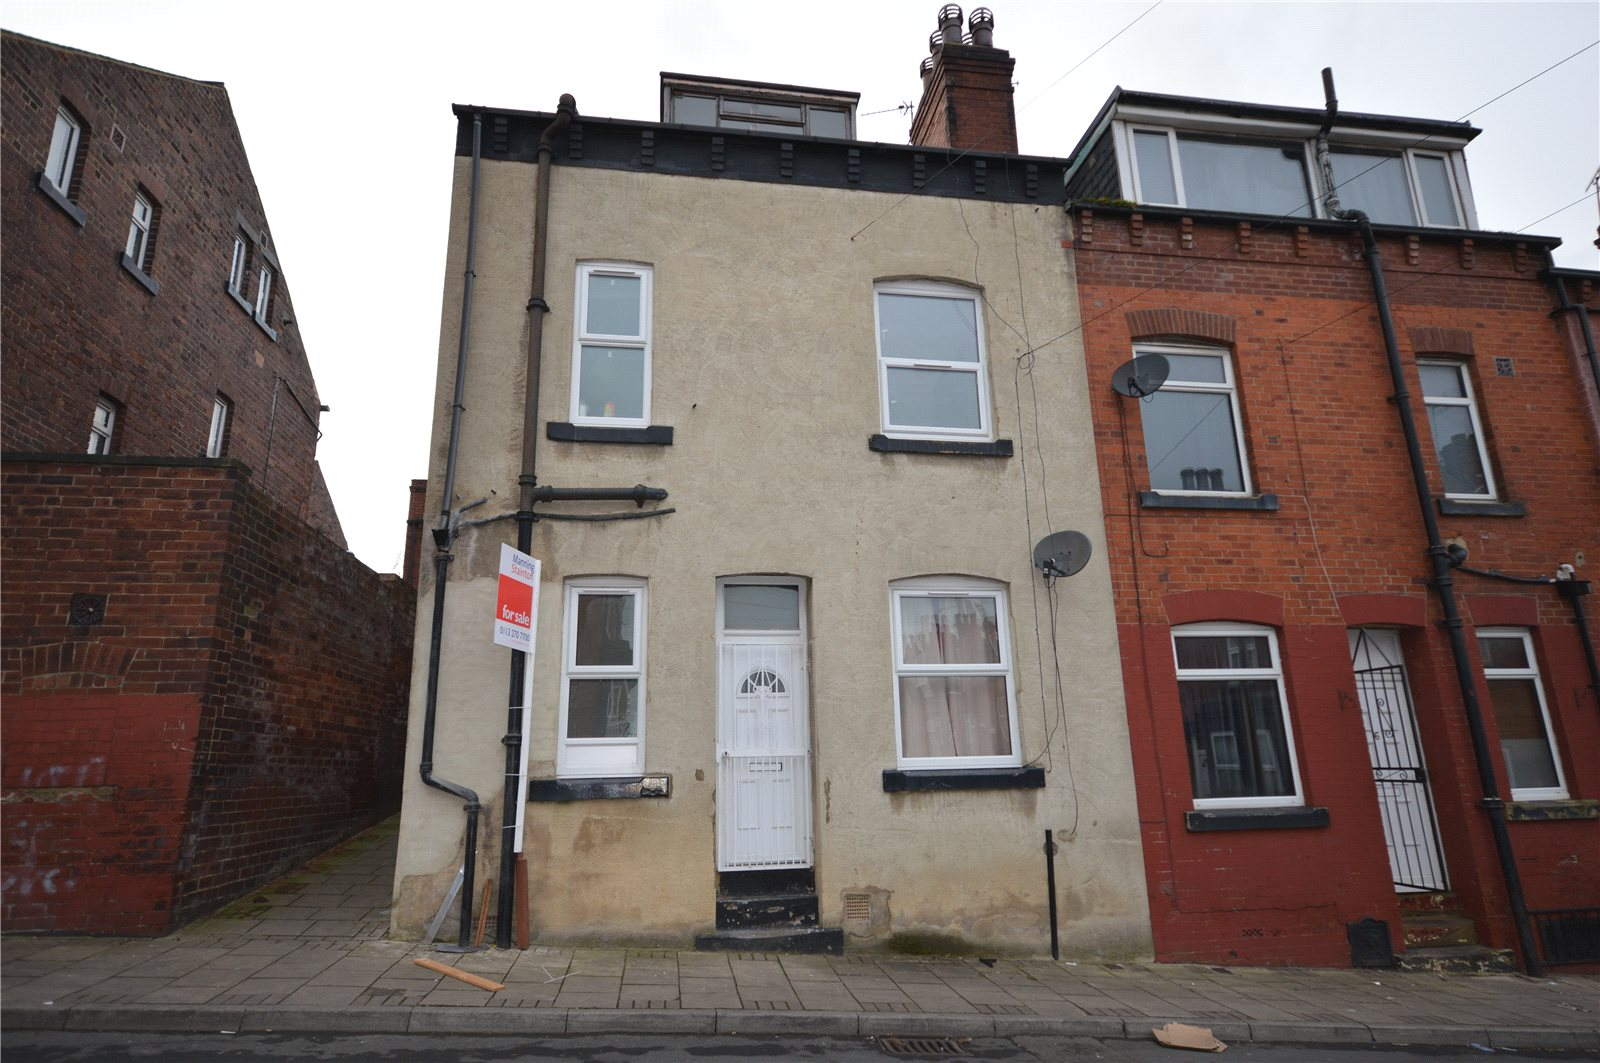 Property for sale in Beeston, exterior end terrace house